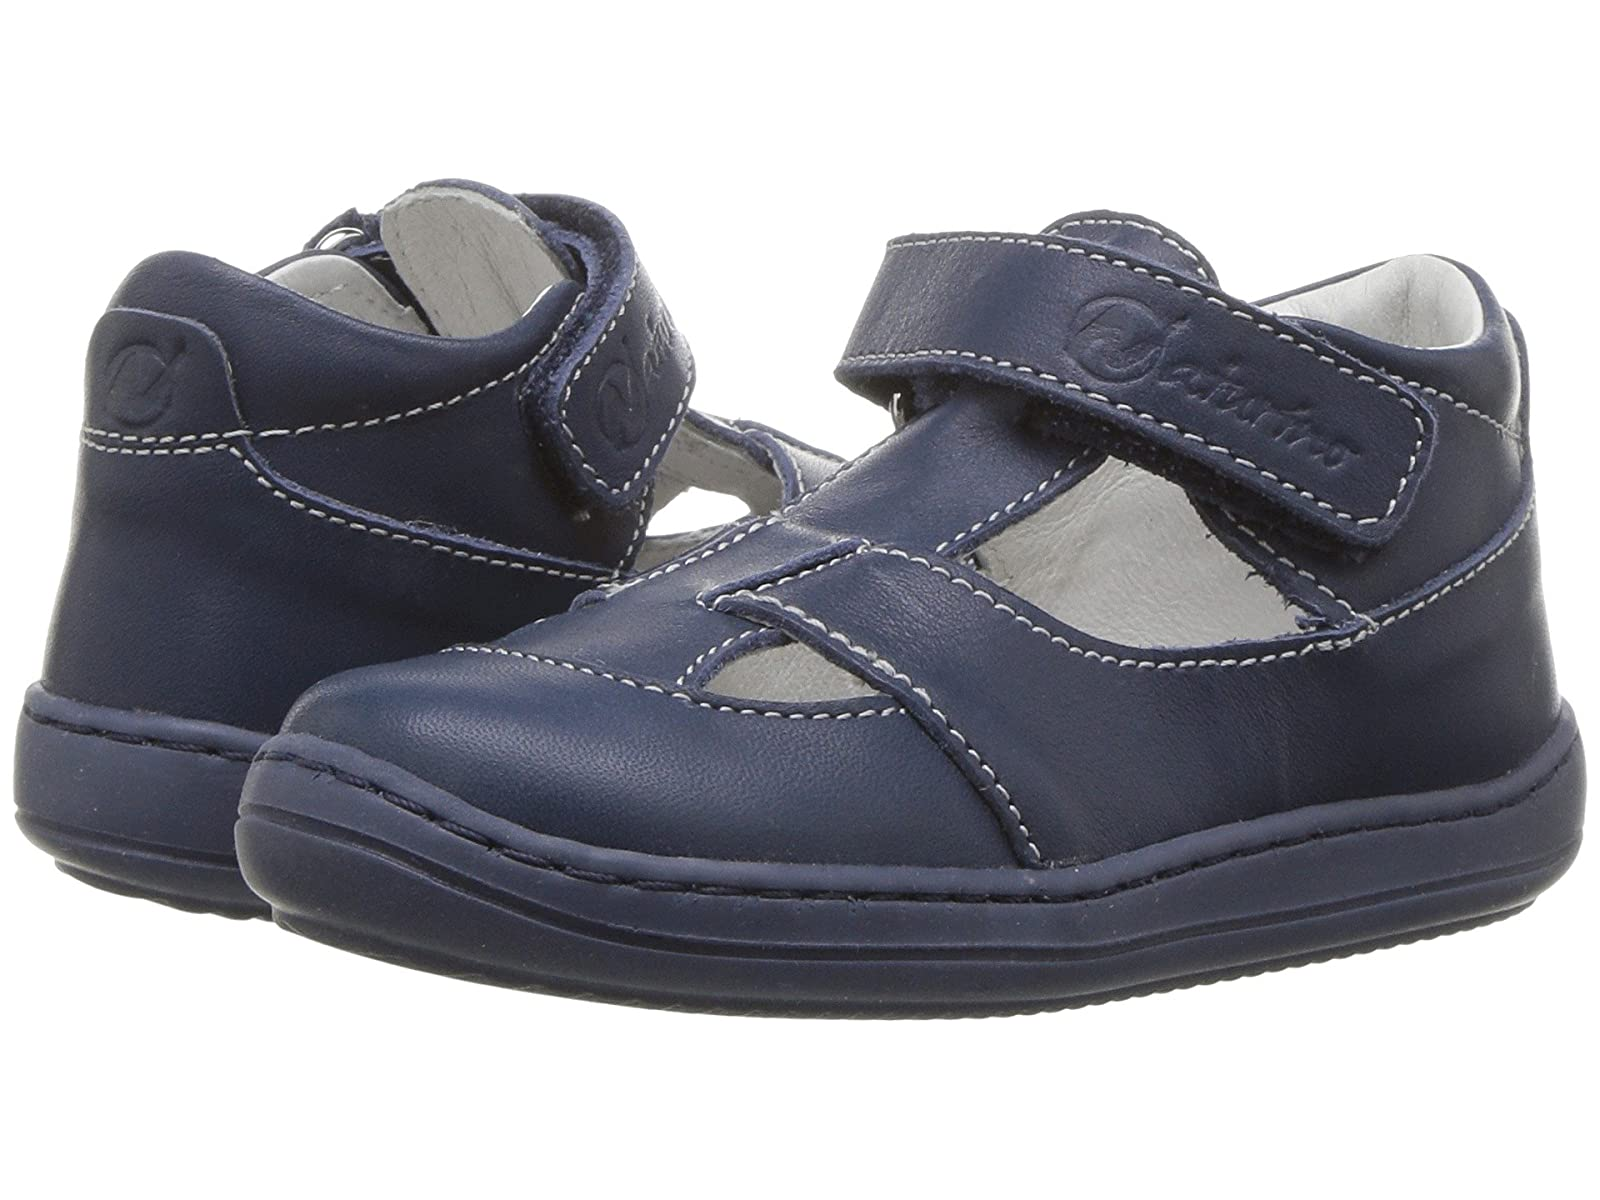 Naturino 4699 SS18 (Toddler)Cheap and distinctive eye-catching shoes